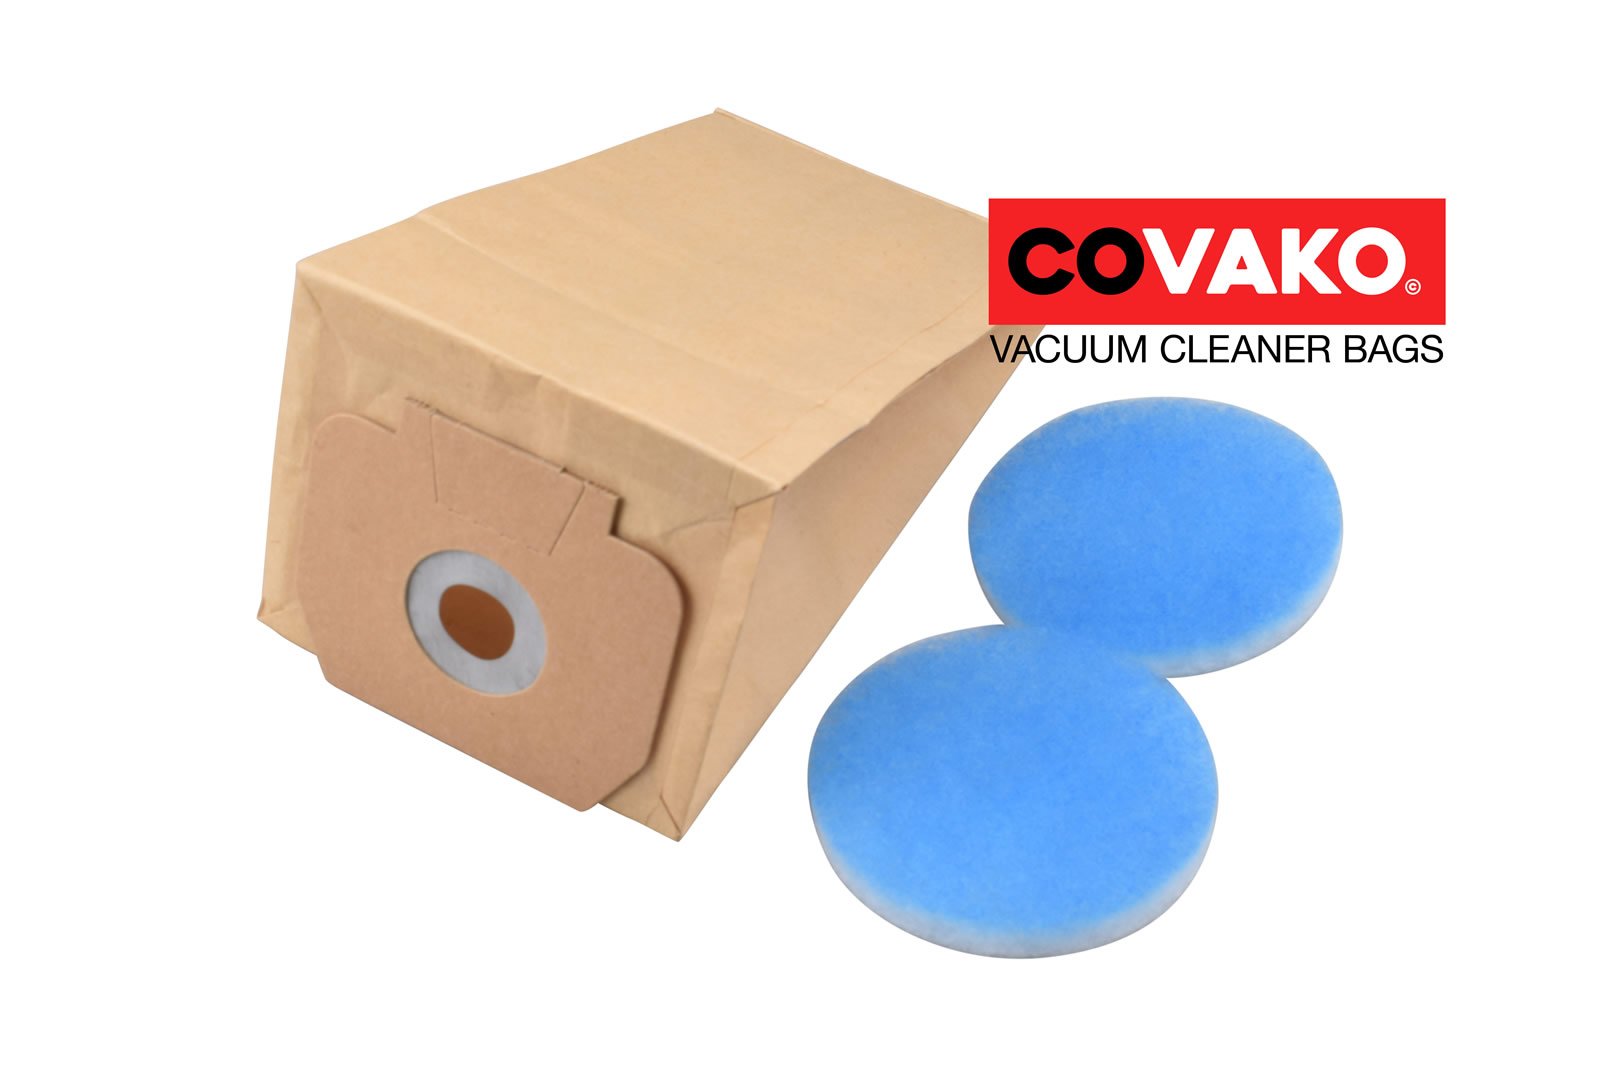 Clean a la Card RS 09 / Paper - Clean a la Card vacuum cleaner bags